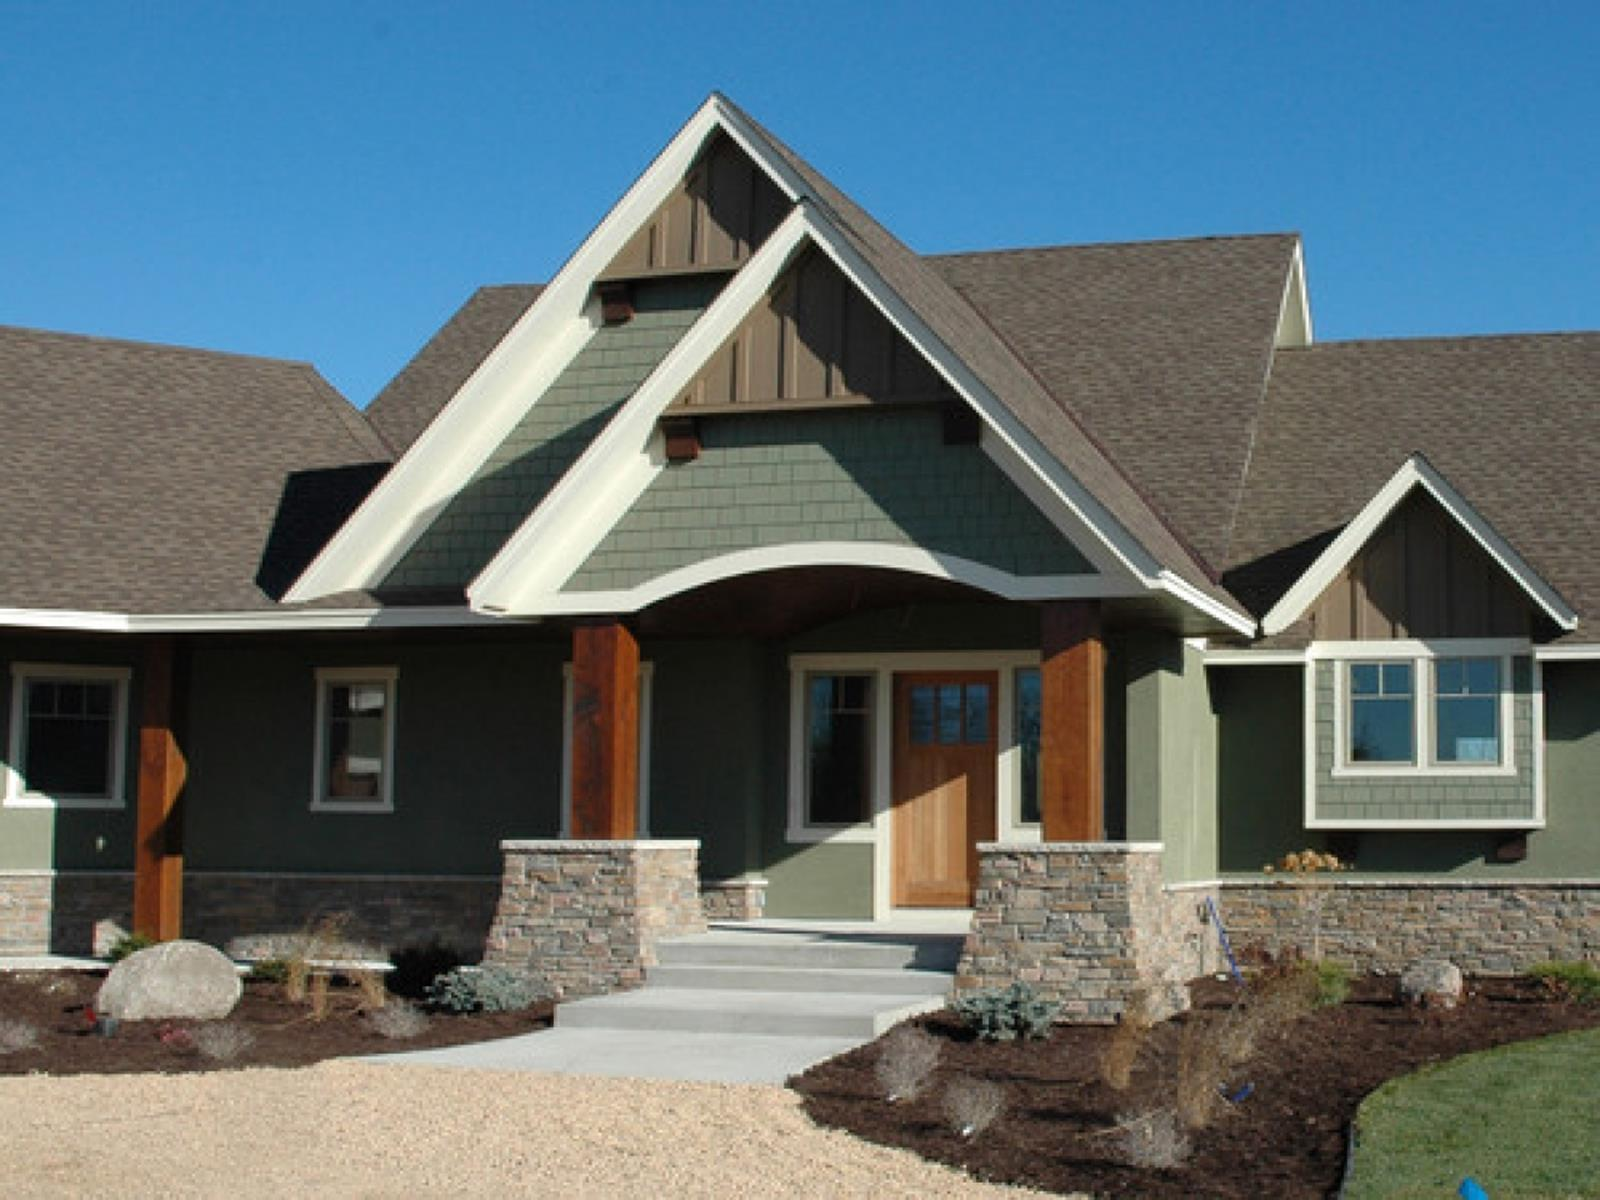 Stunning Exterior House With Brown Roof Colors 27